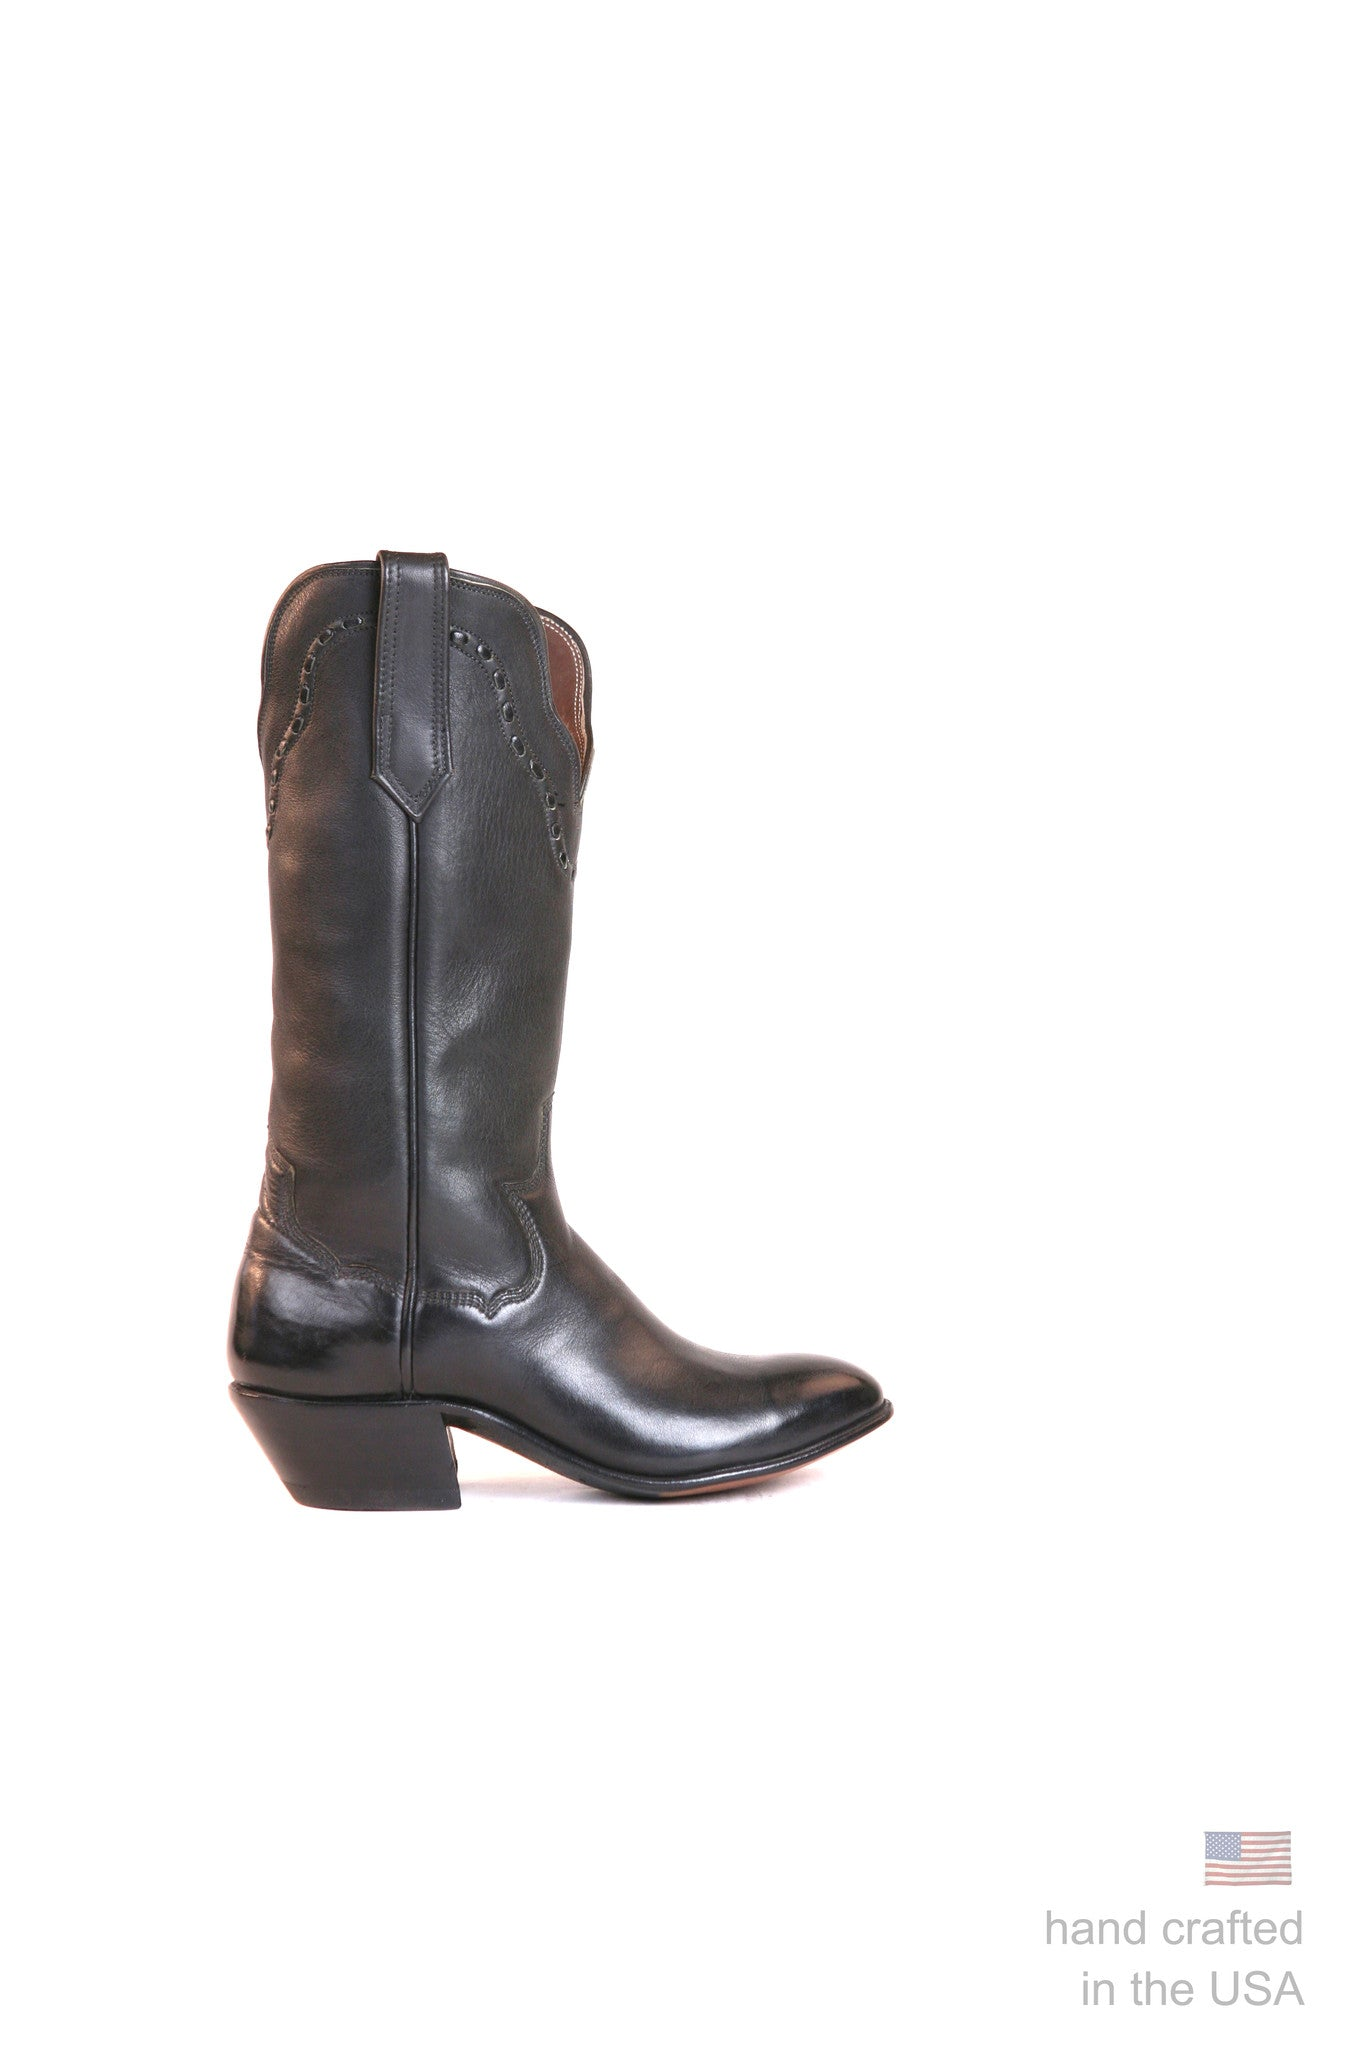 Singles: Boot 0013: Size 4.5 A